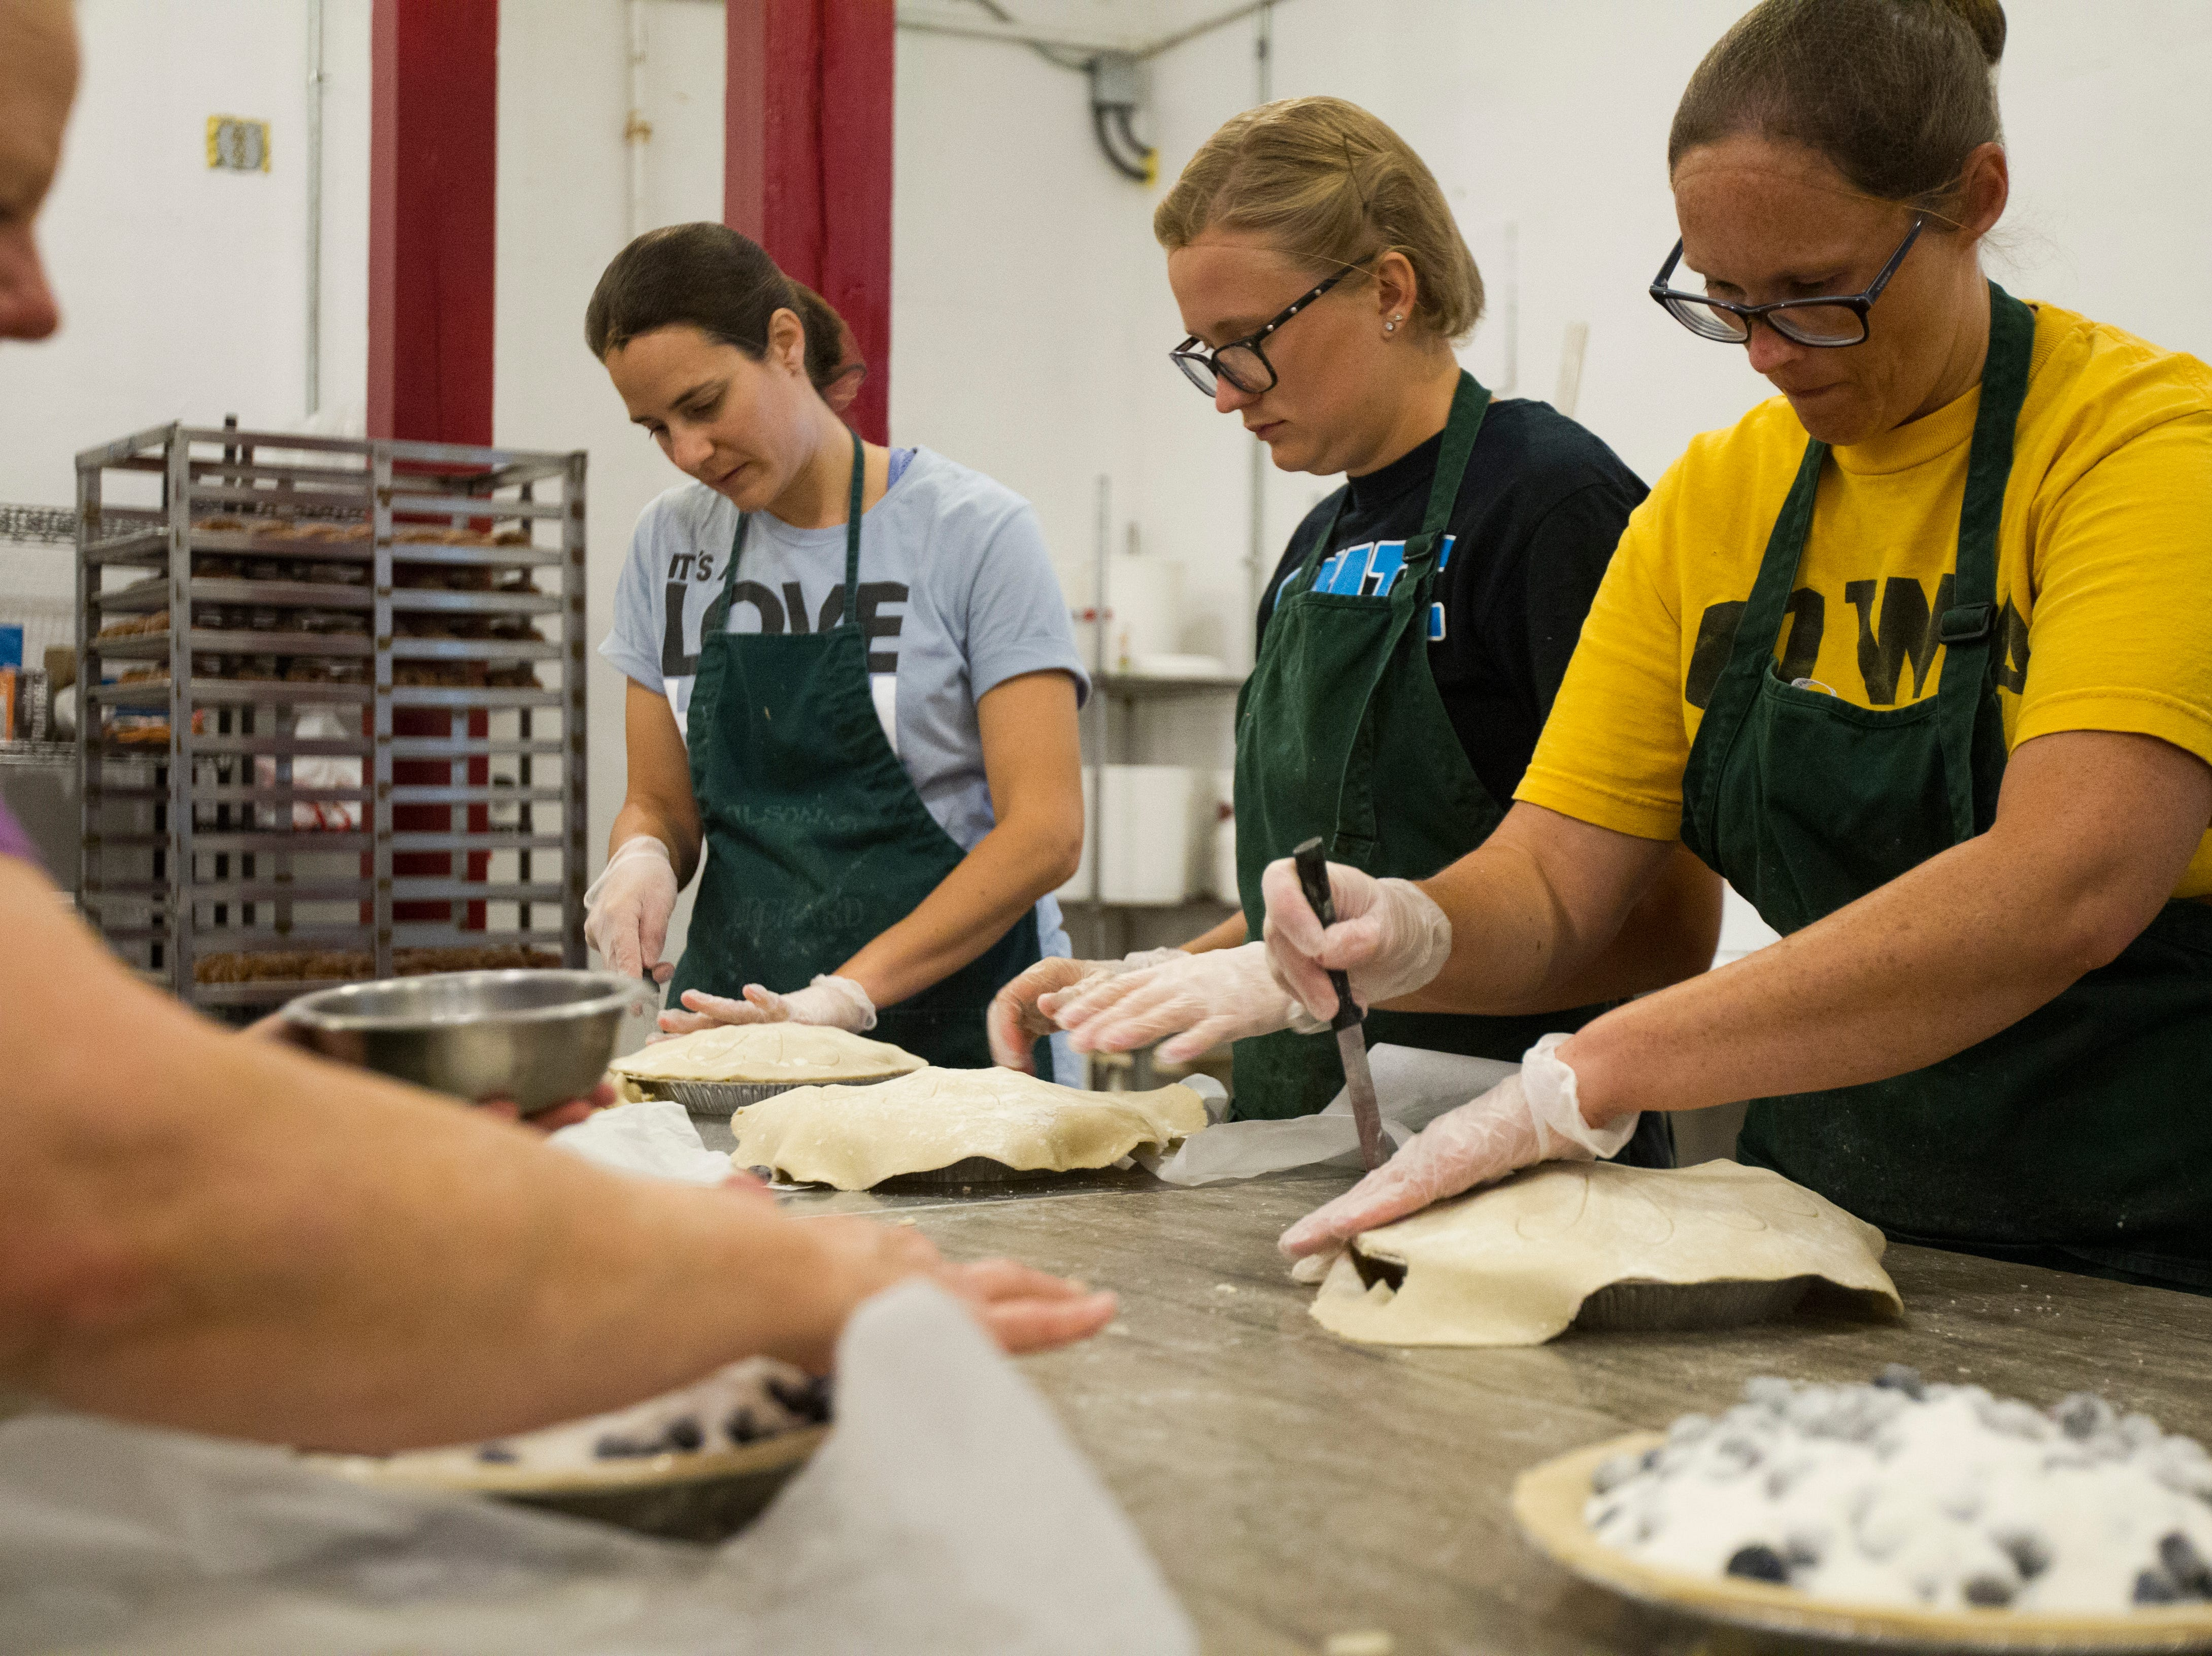 Members of the Wilson's bakery crew make blueberry pies on Wednesday, Aug. 1, 2018, at Wilson's Apple Orchard in Iowa City, Iowa. The orchard is open from Aug. 1 through Oct. 31, 10 a.m. to 6 p.m daily.